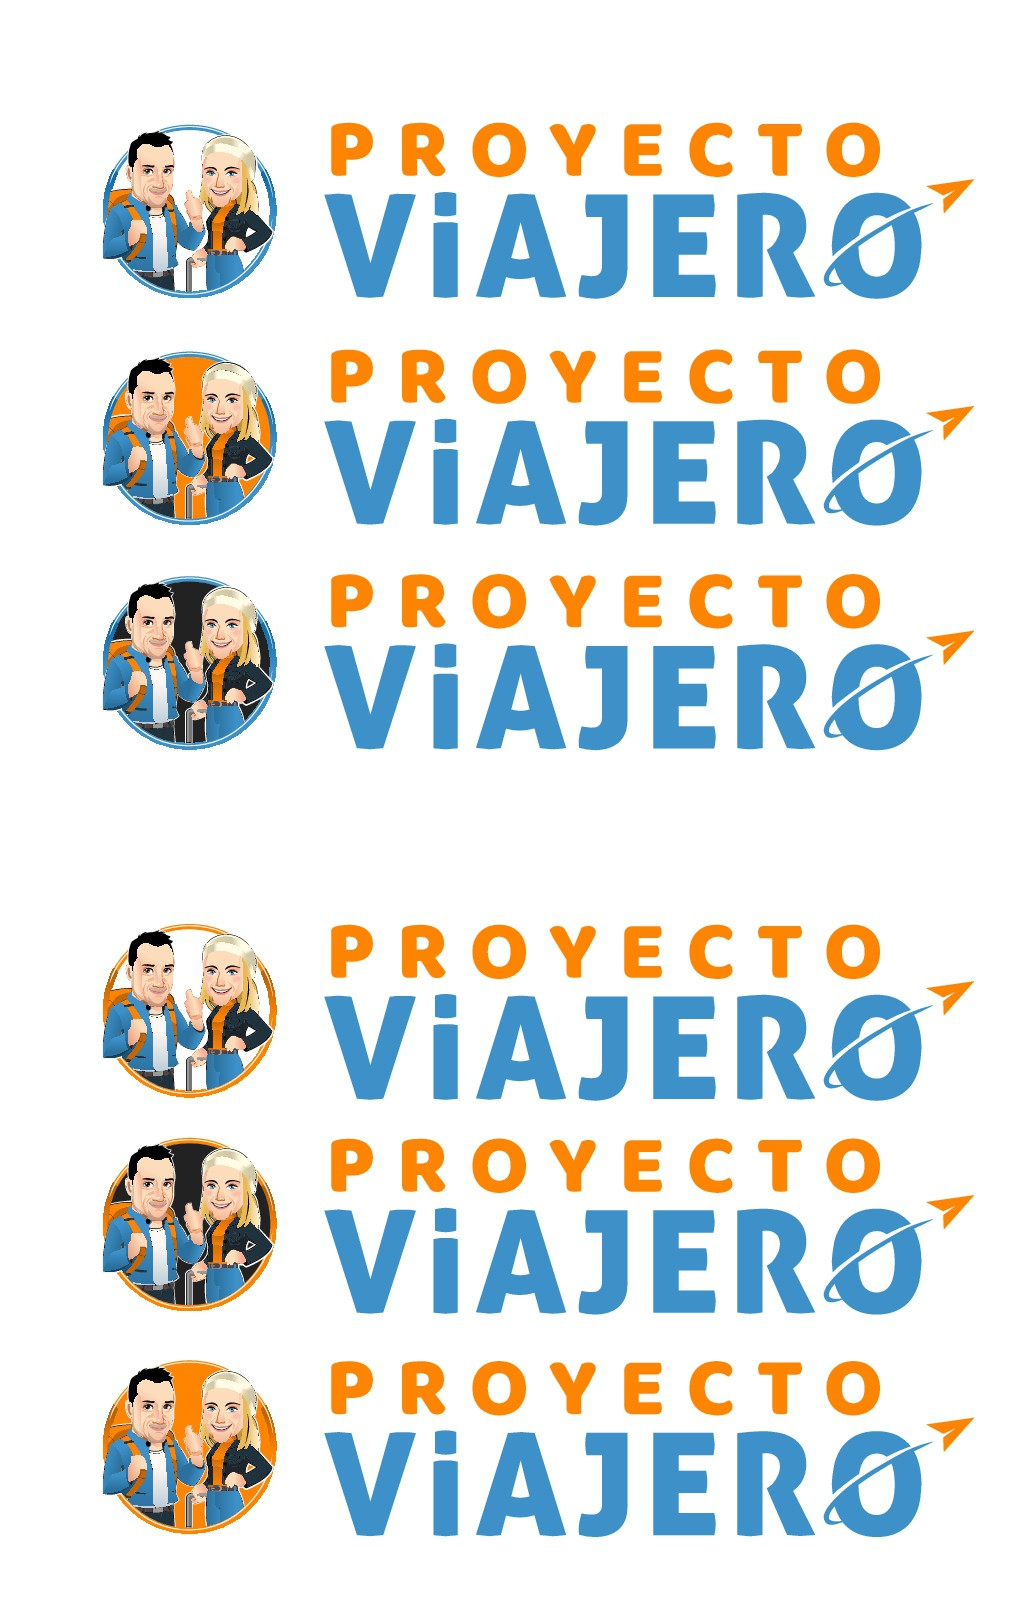 Design a modern logo featuring a moreno spanish guy and a blonde polish girl that love to travel